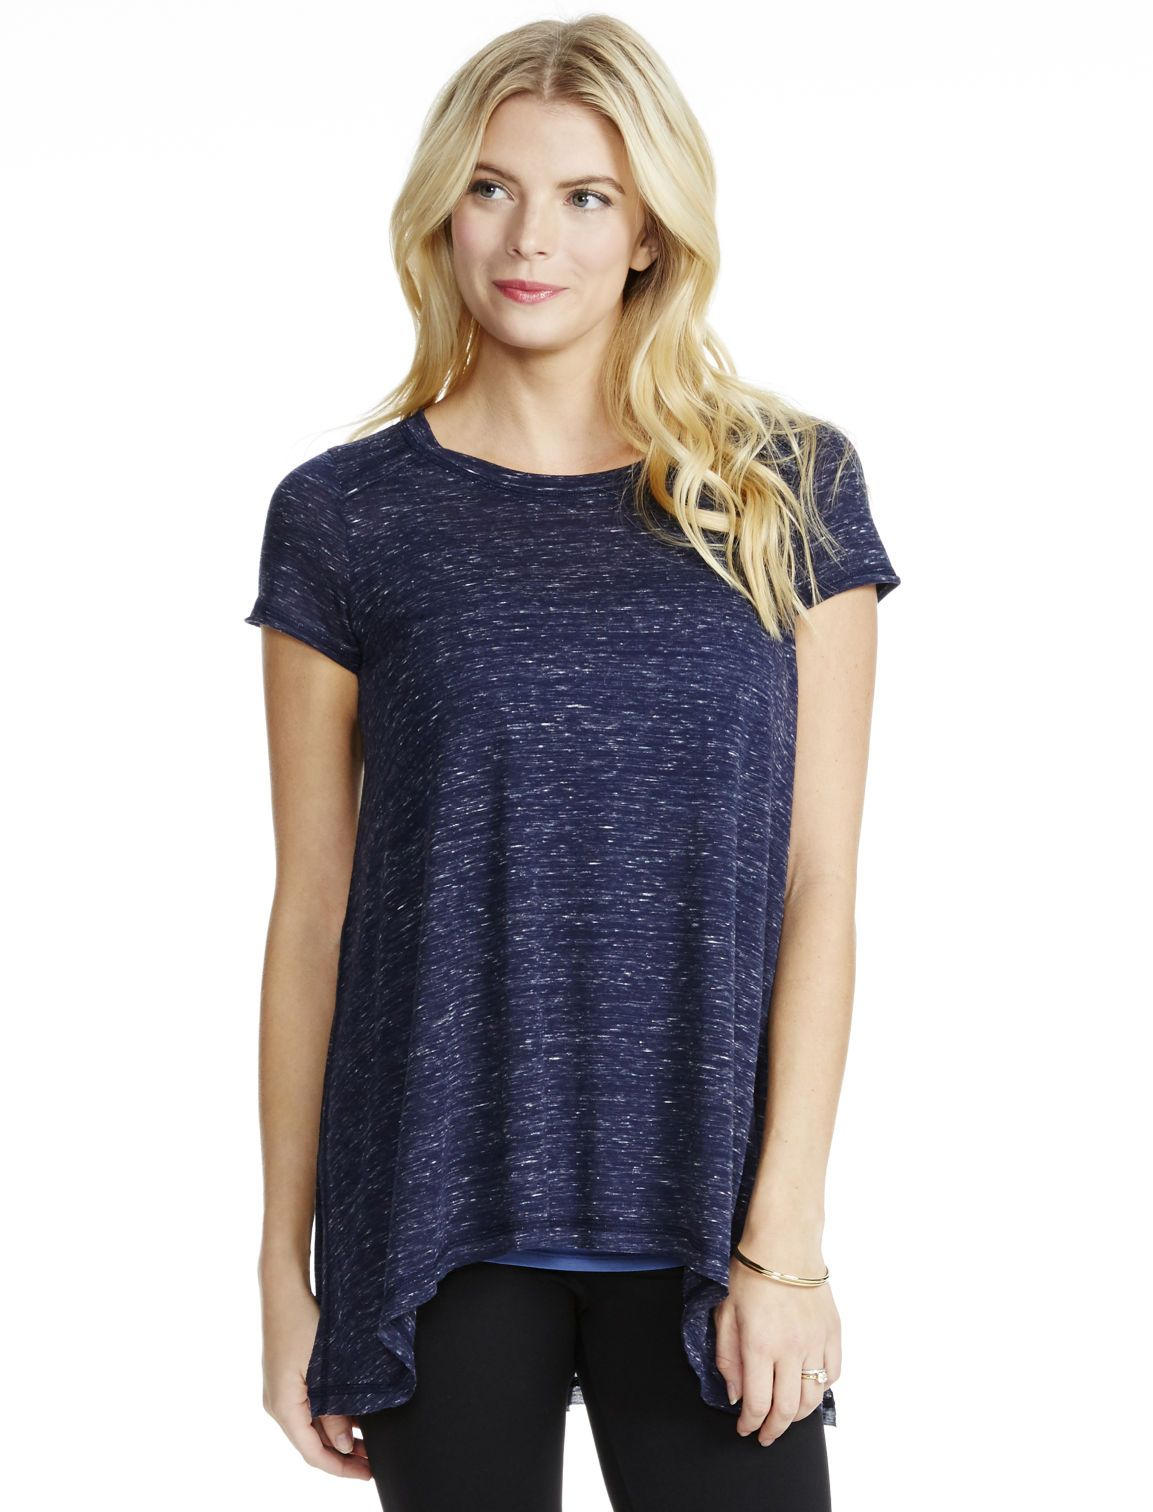 12a64acfd2e56 The best nursing top you'll own | Short sleeve side access super soft nursing  top by Jessica Simpson available at Motherhood Maternity